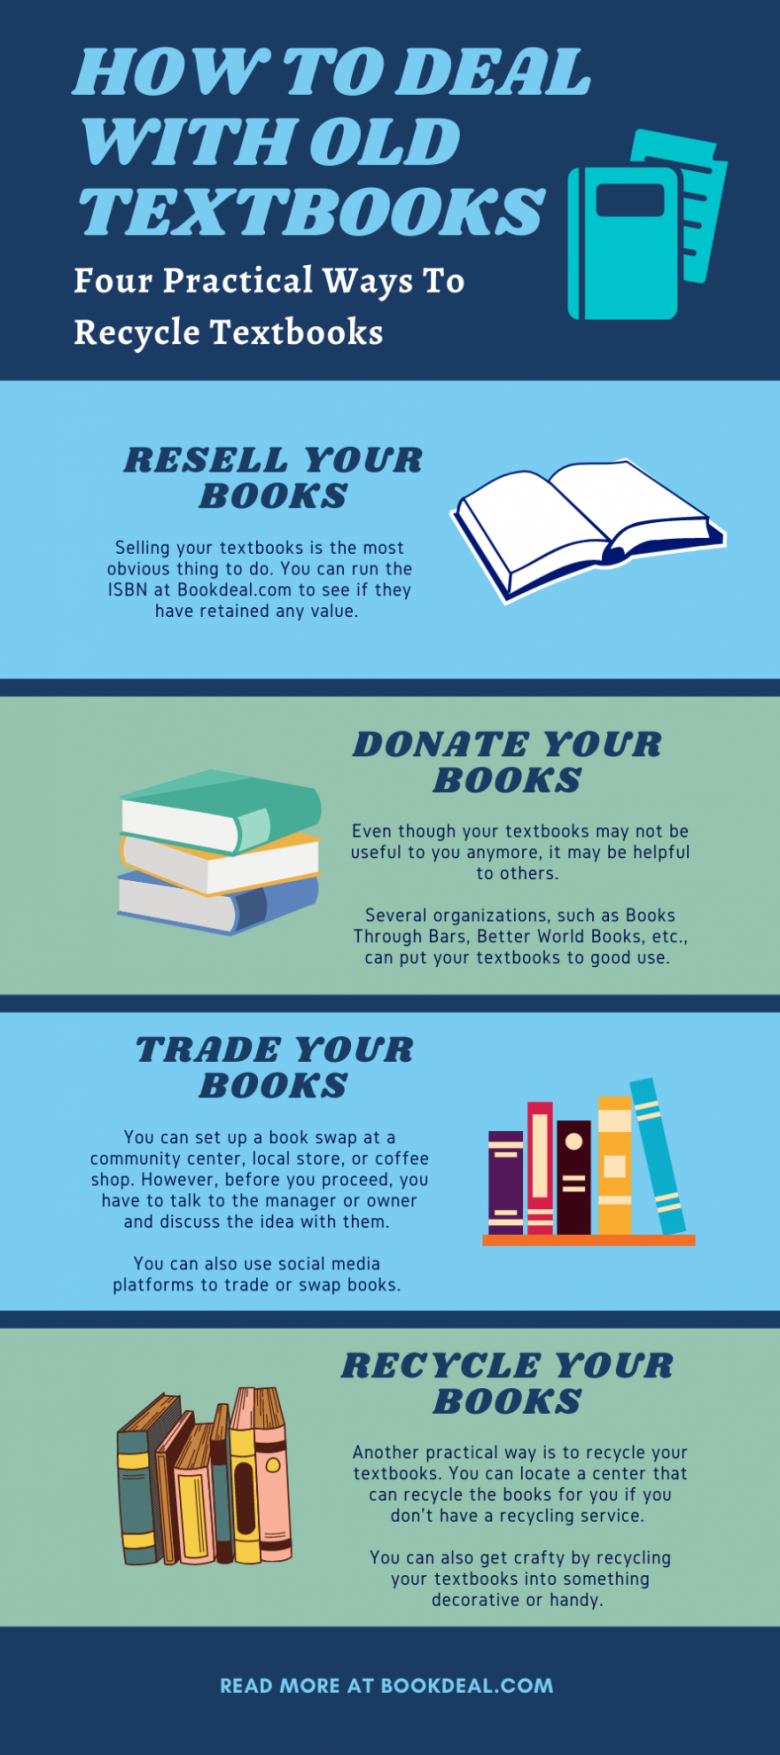 How to Recycle Textbooks (infographic)